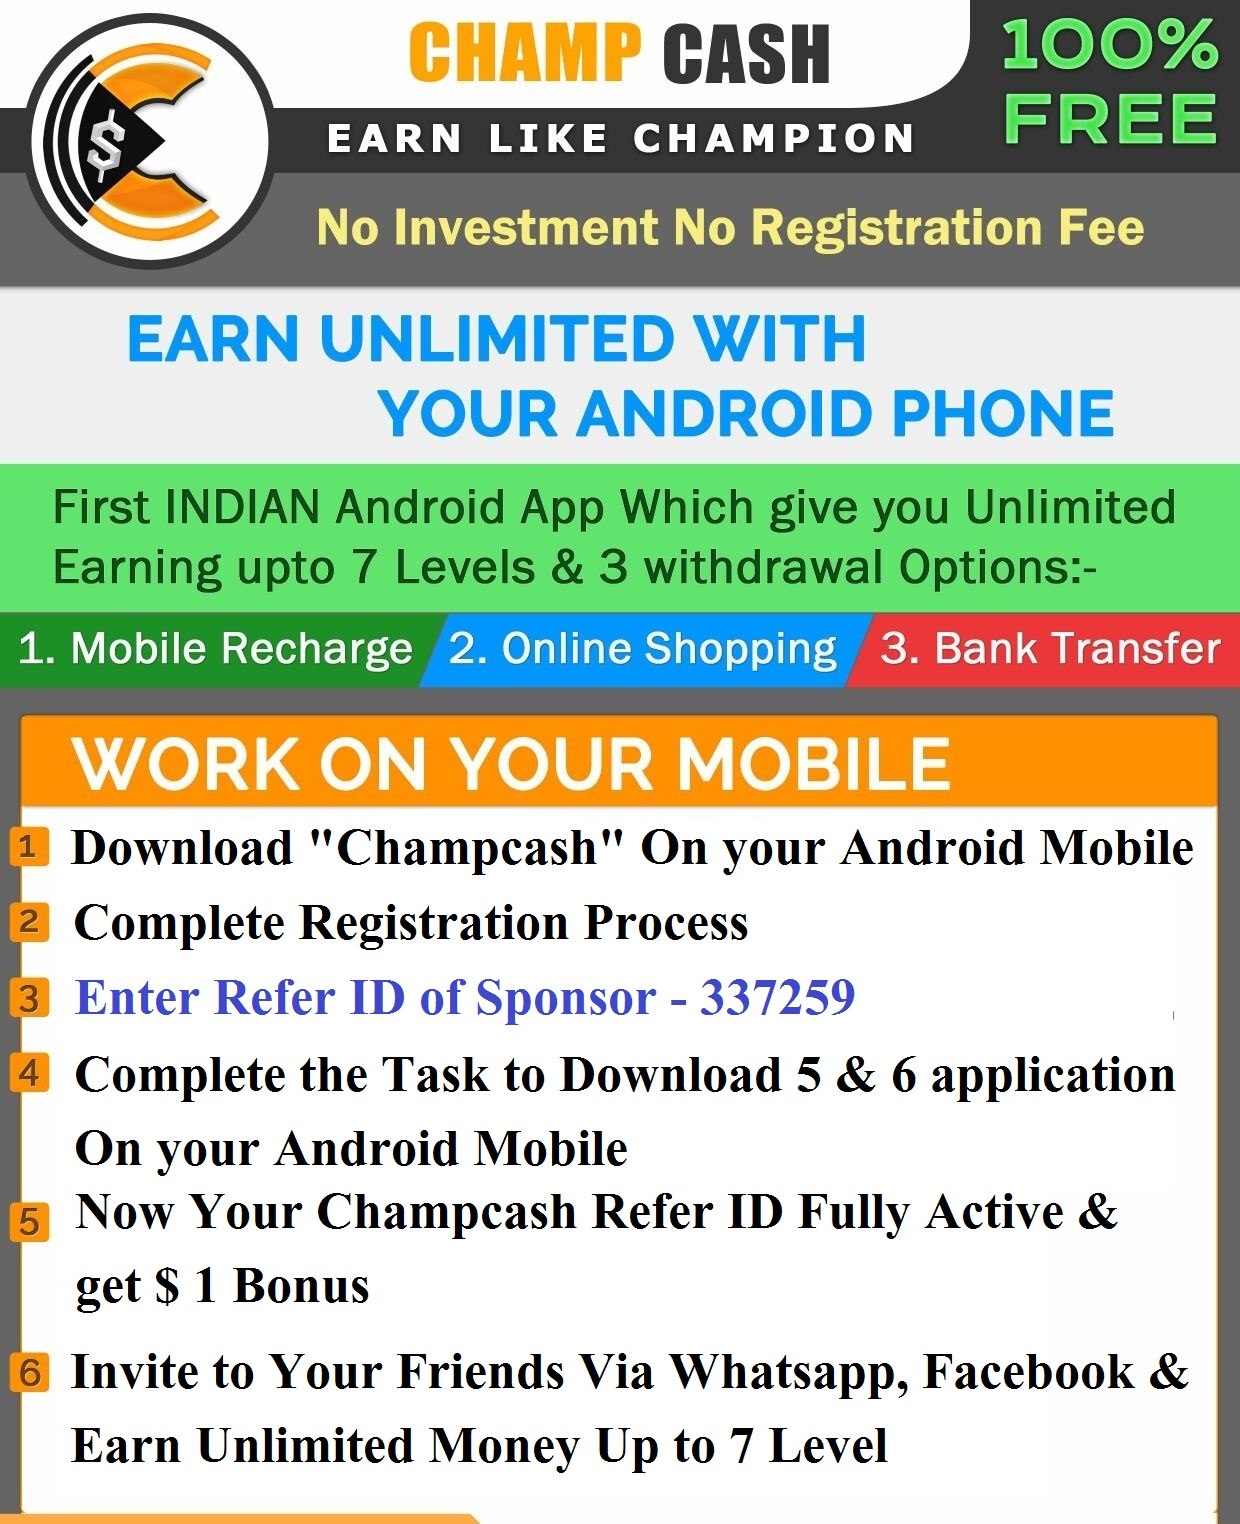 Phone How To Earn Money With Android Phone how to register champcash make money using android phone join champcash